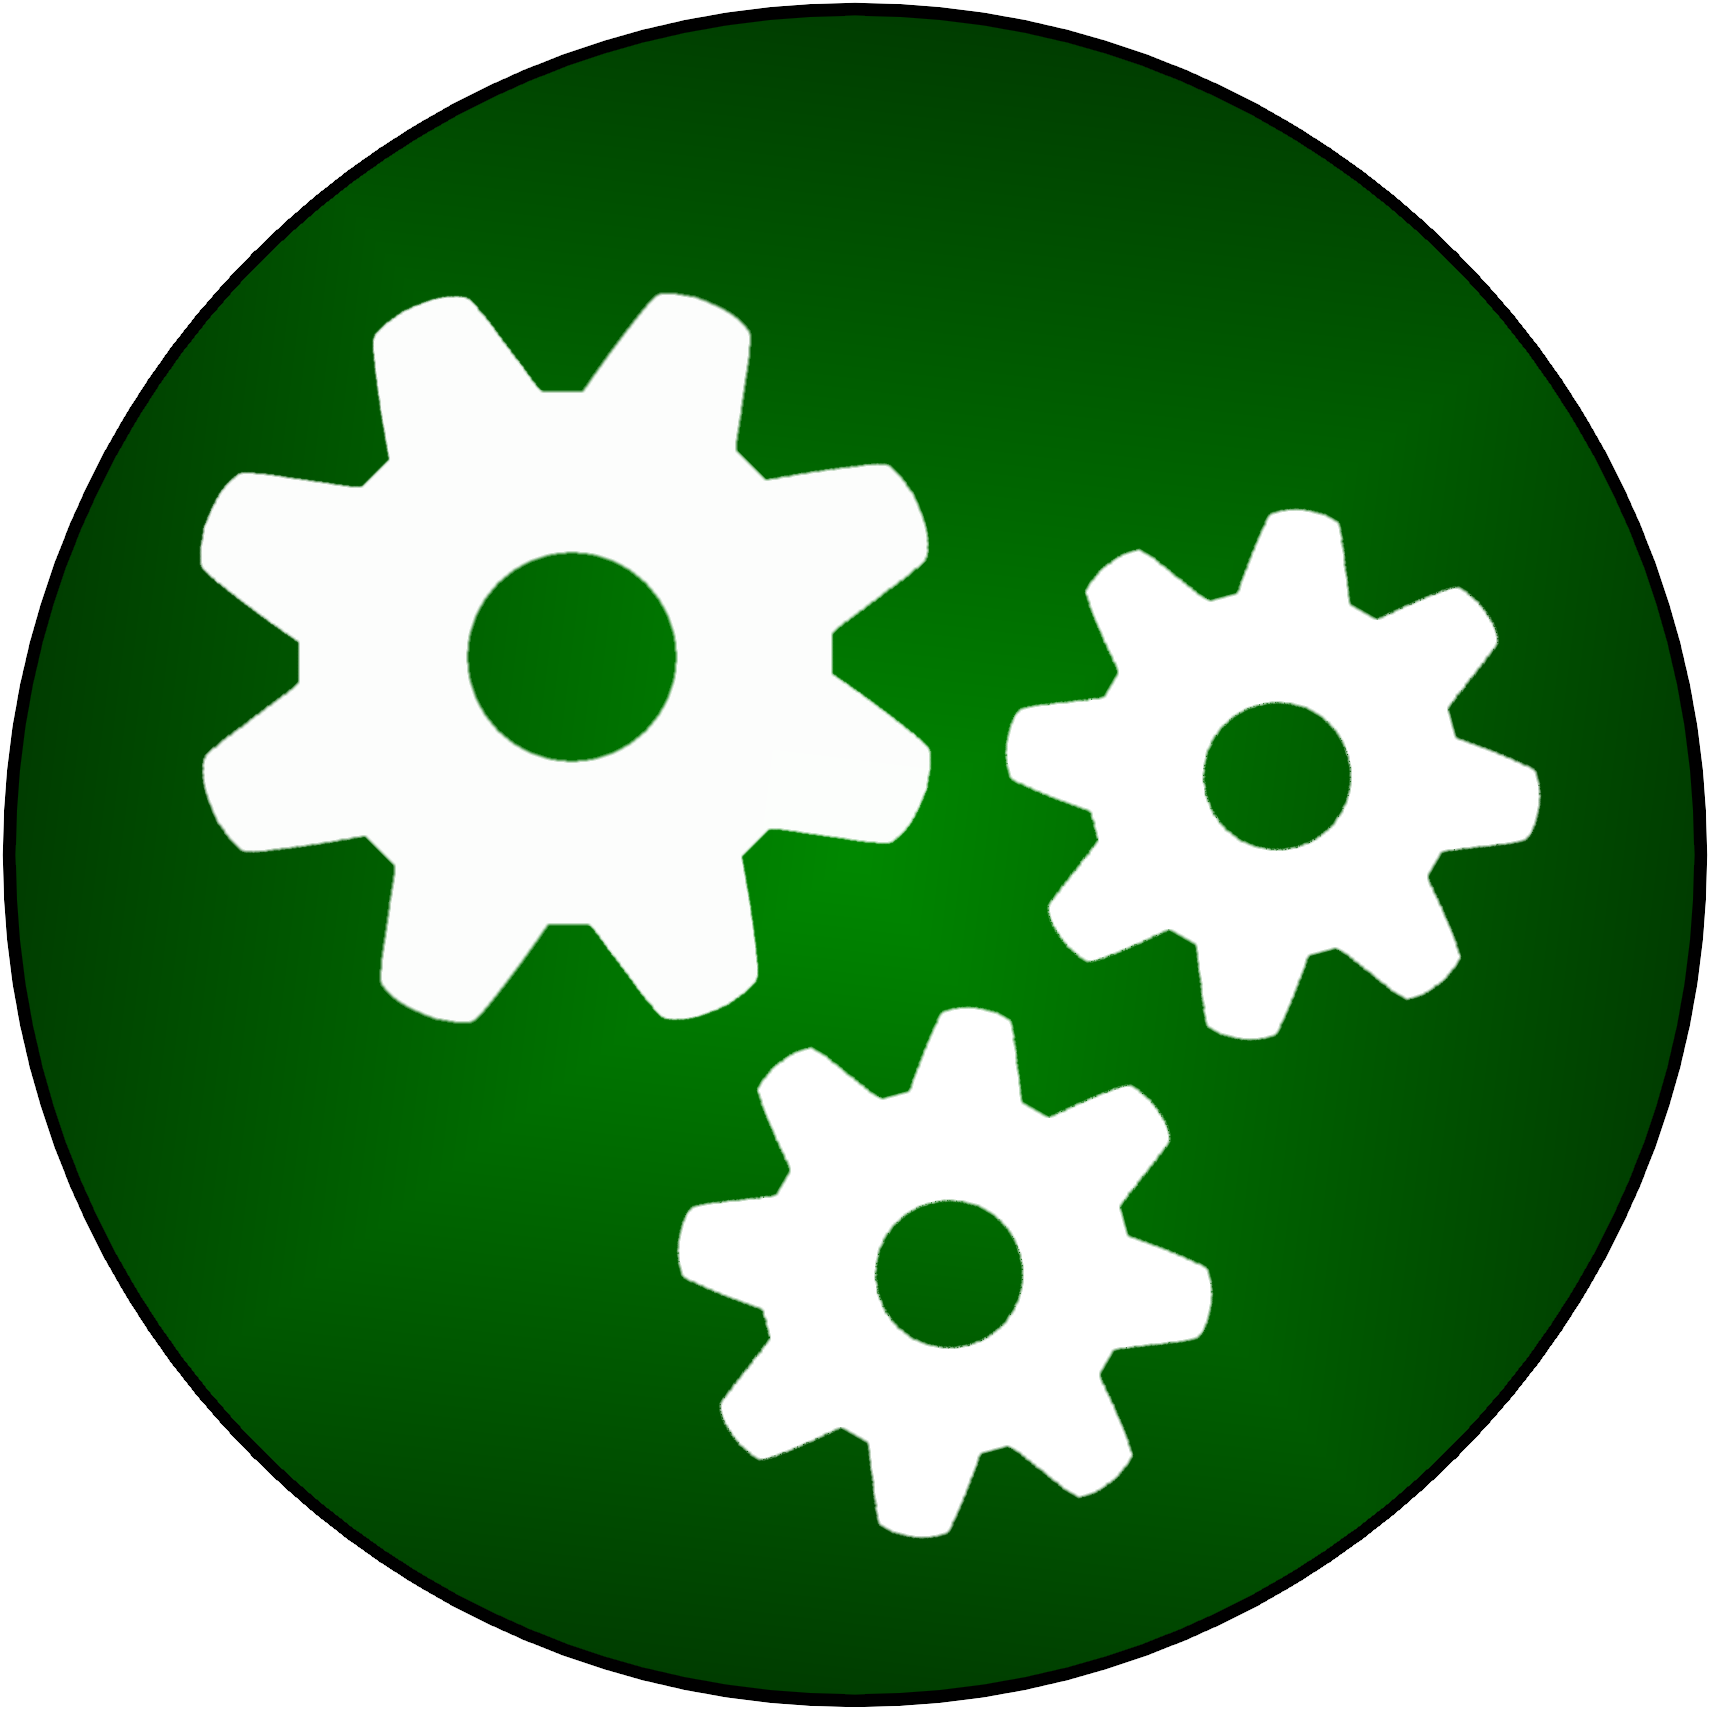 Logos and promo material. Engineer clipart icon